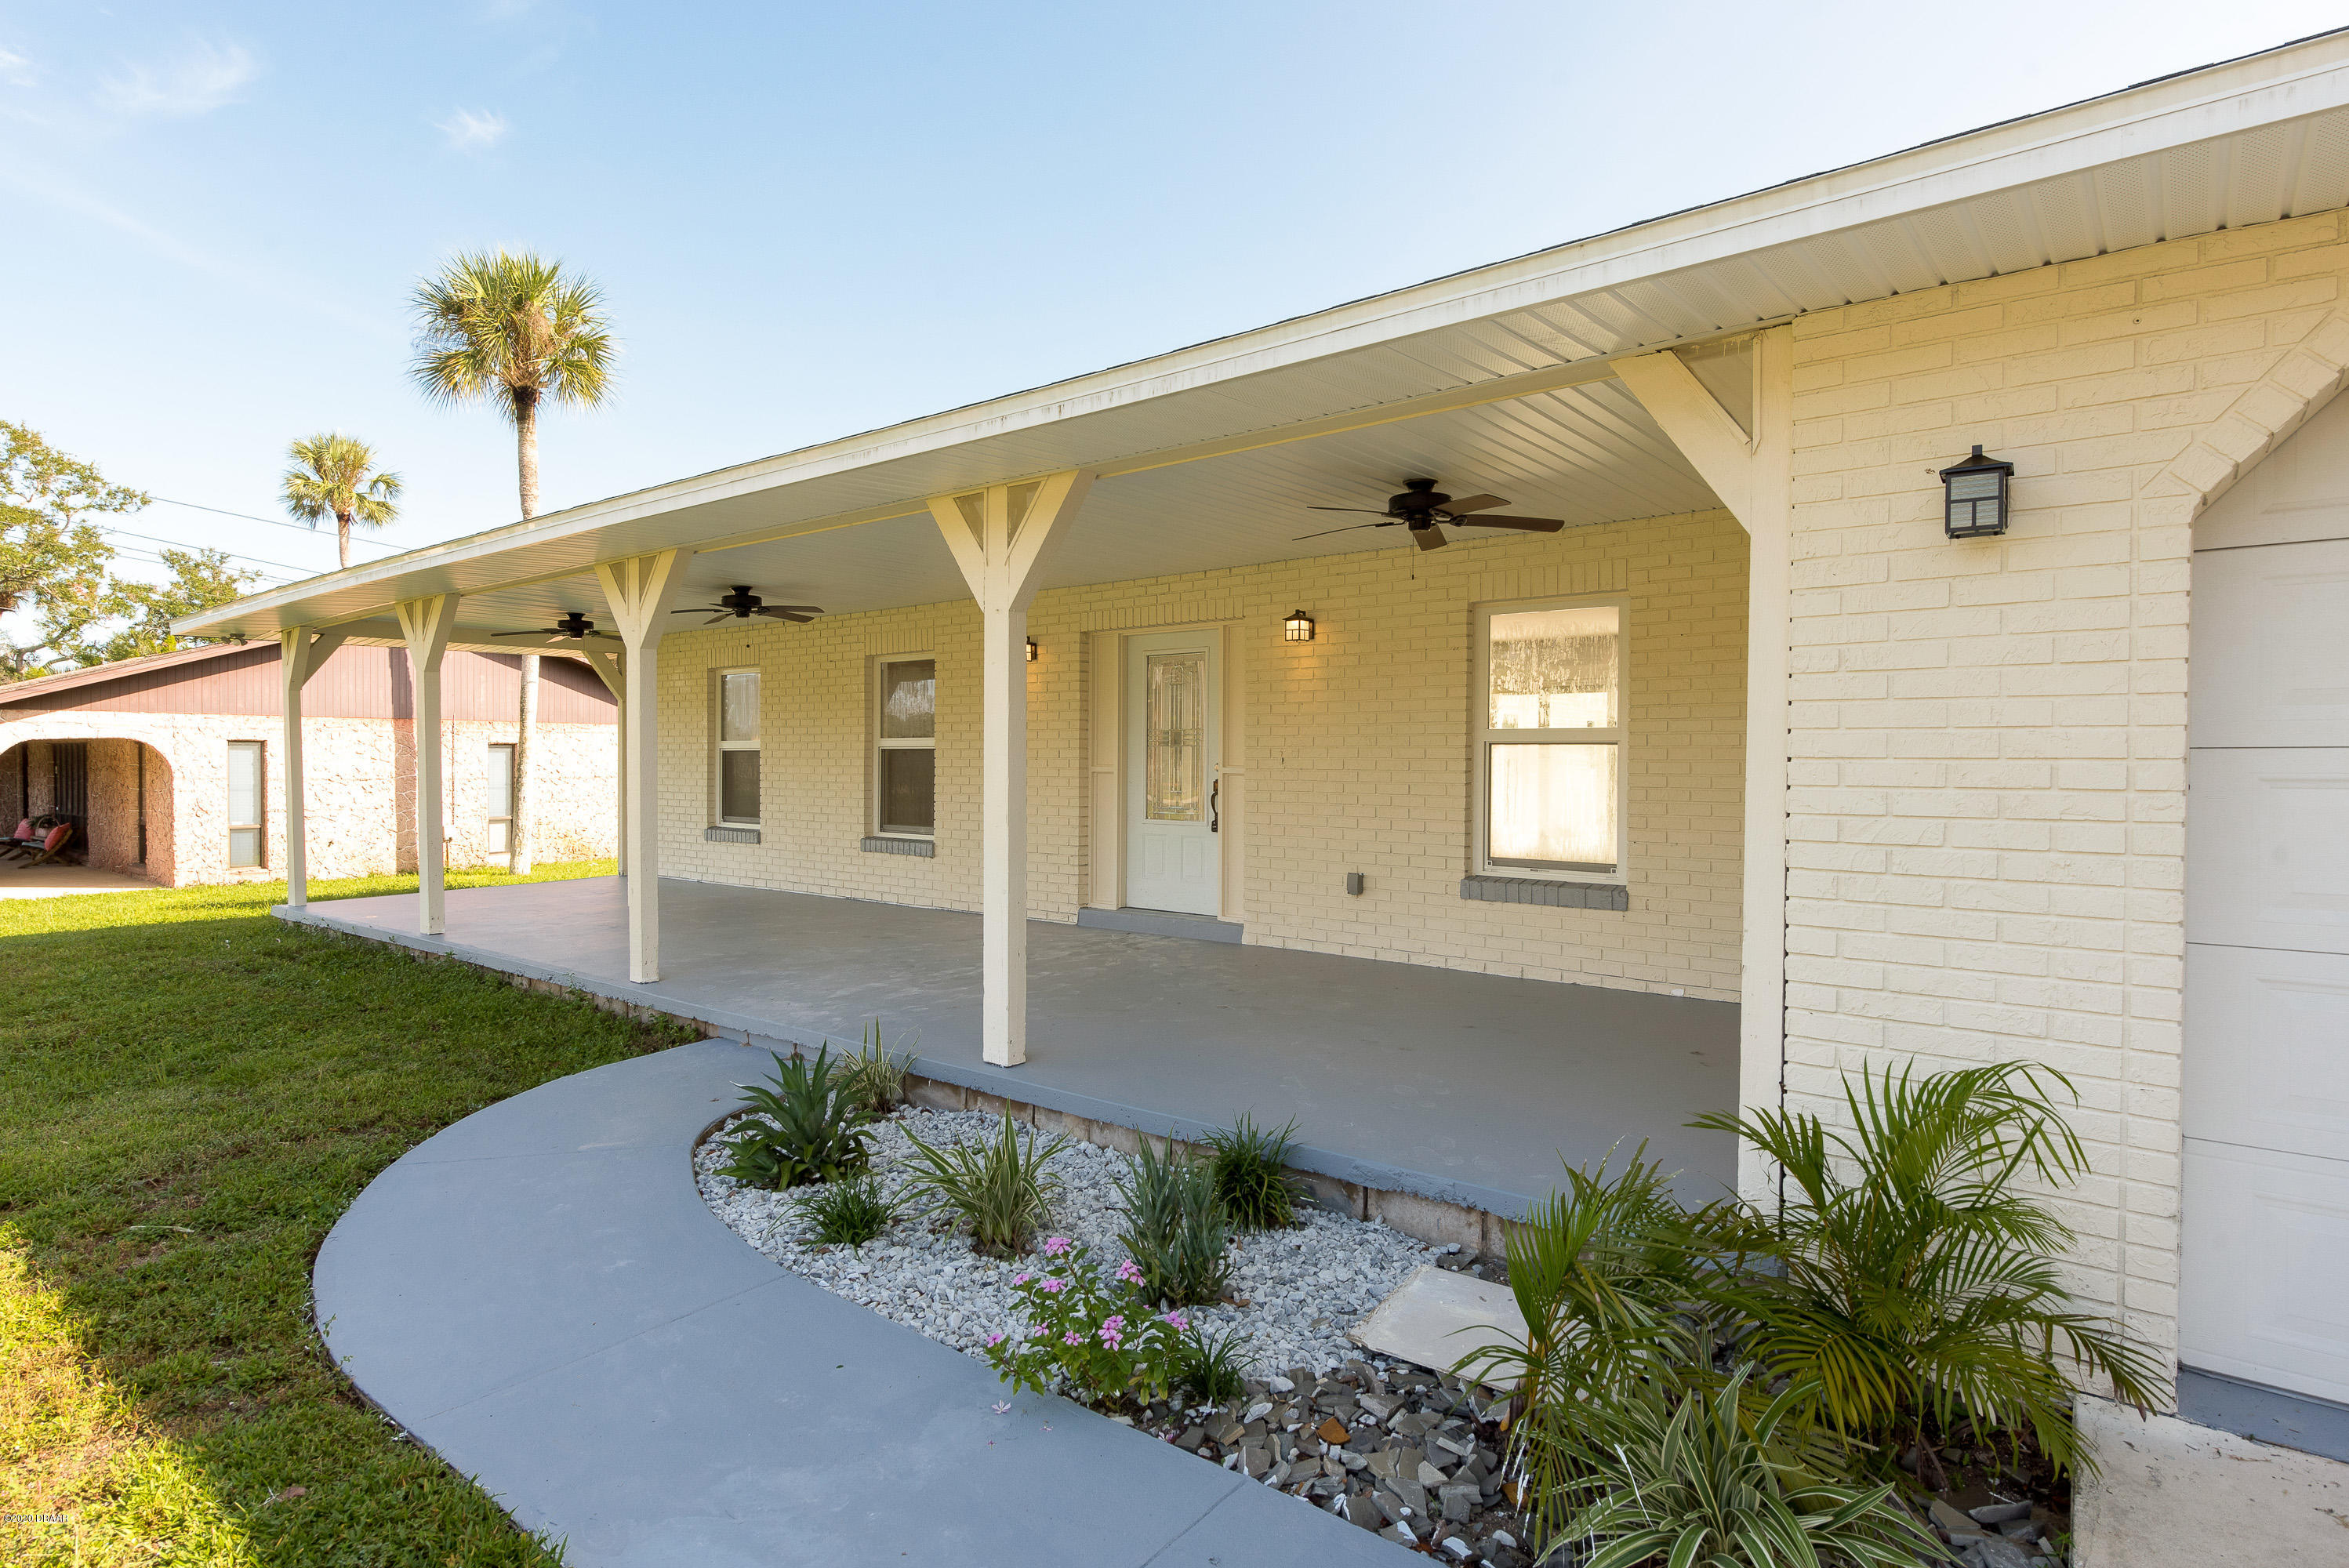 2003 S Palmetto Avenue, one of homes for sale in South Daytona